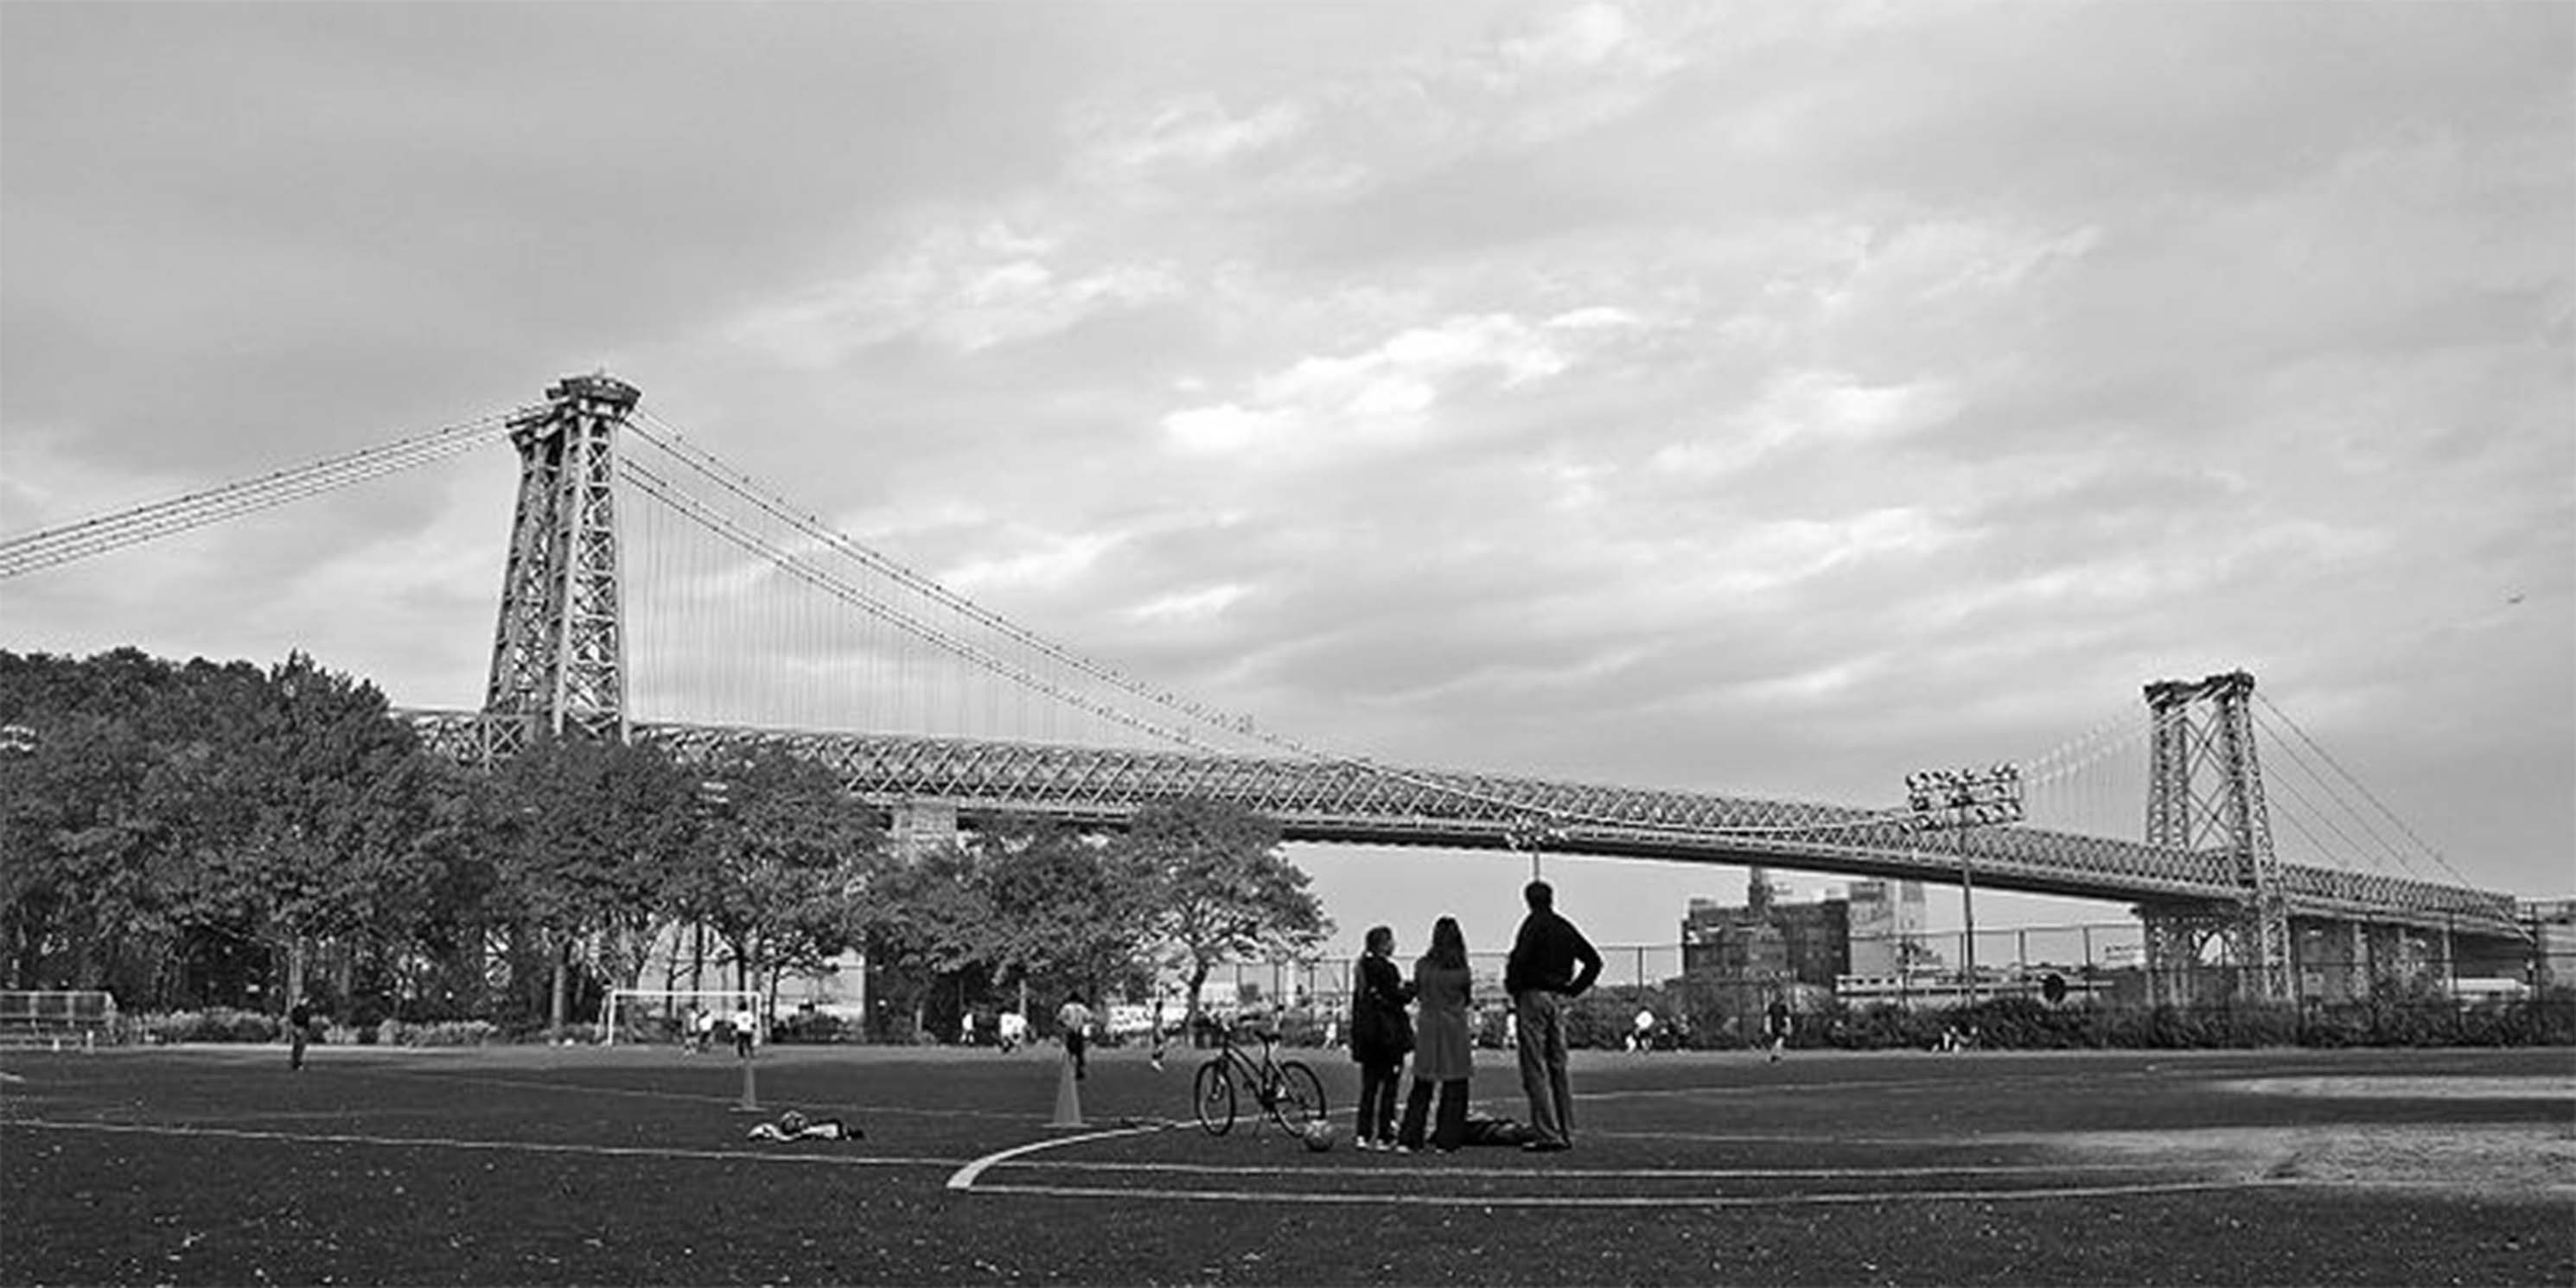 people on a sports field at East River Park in Fall